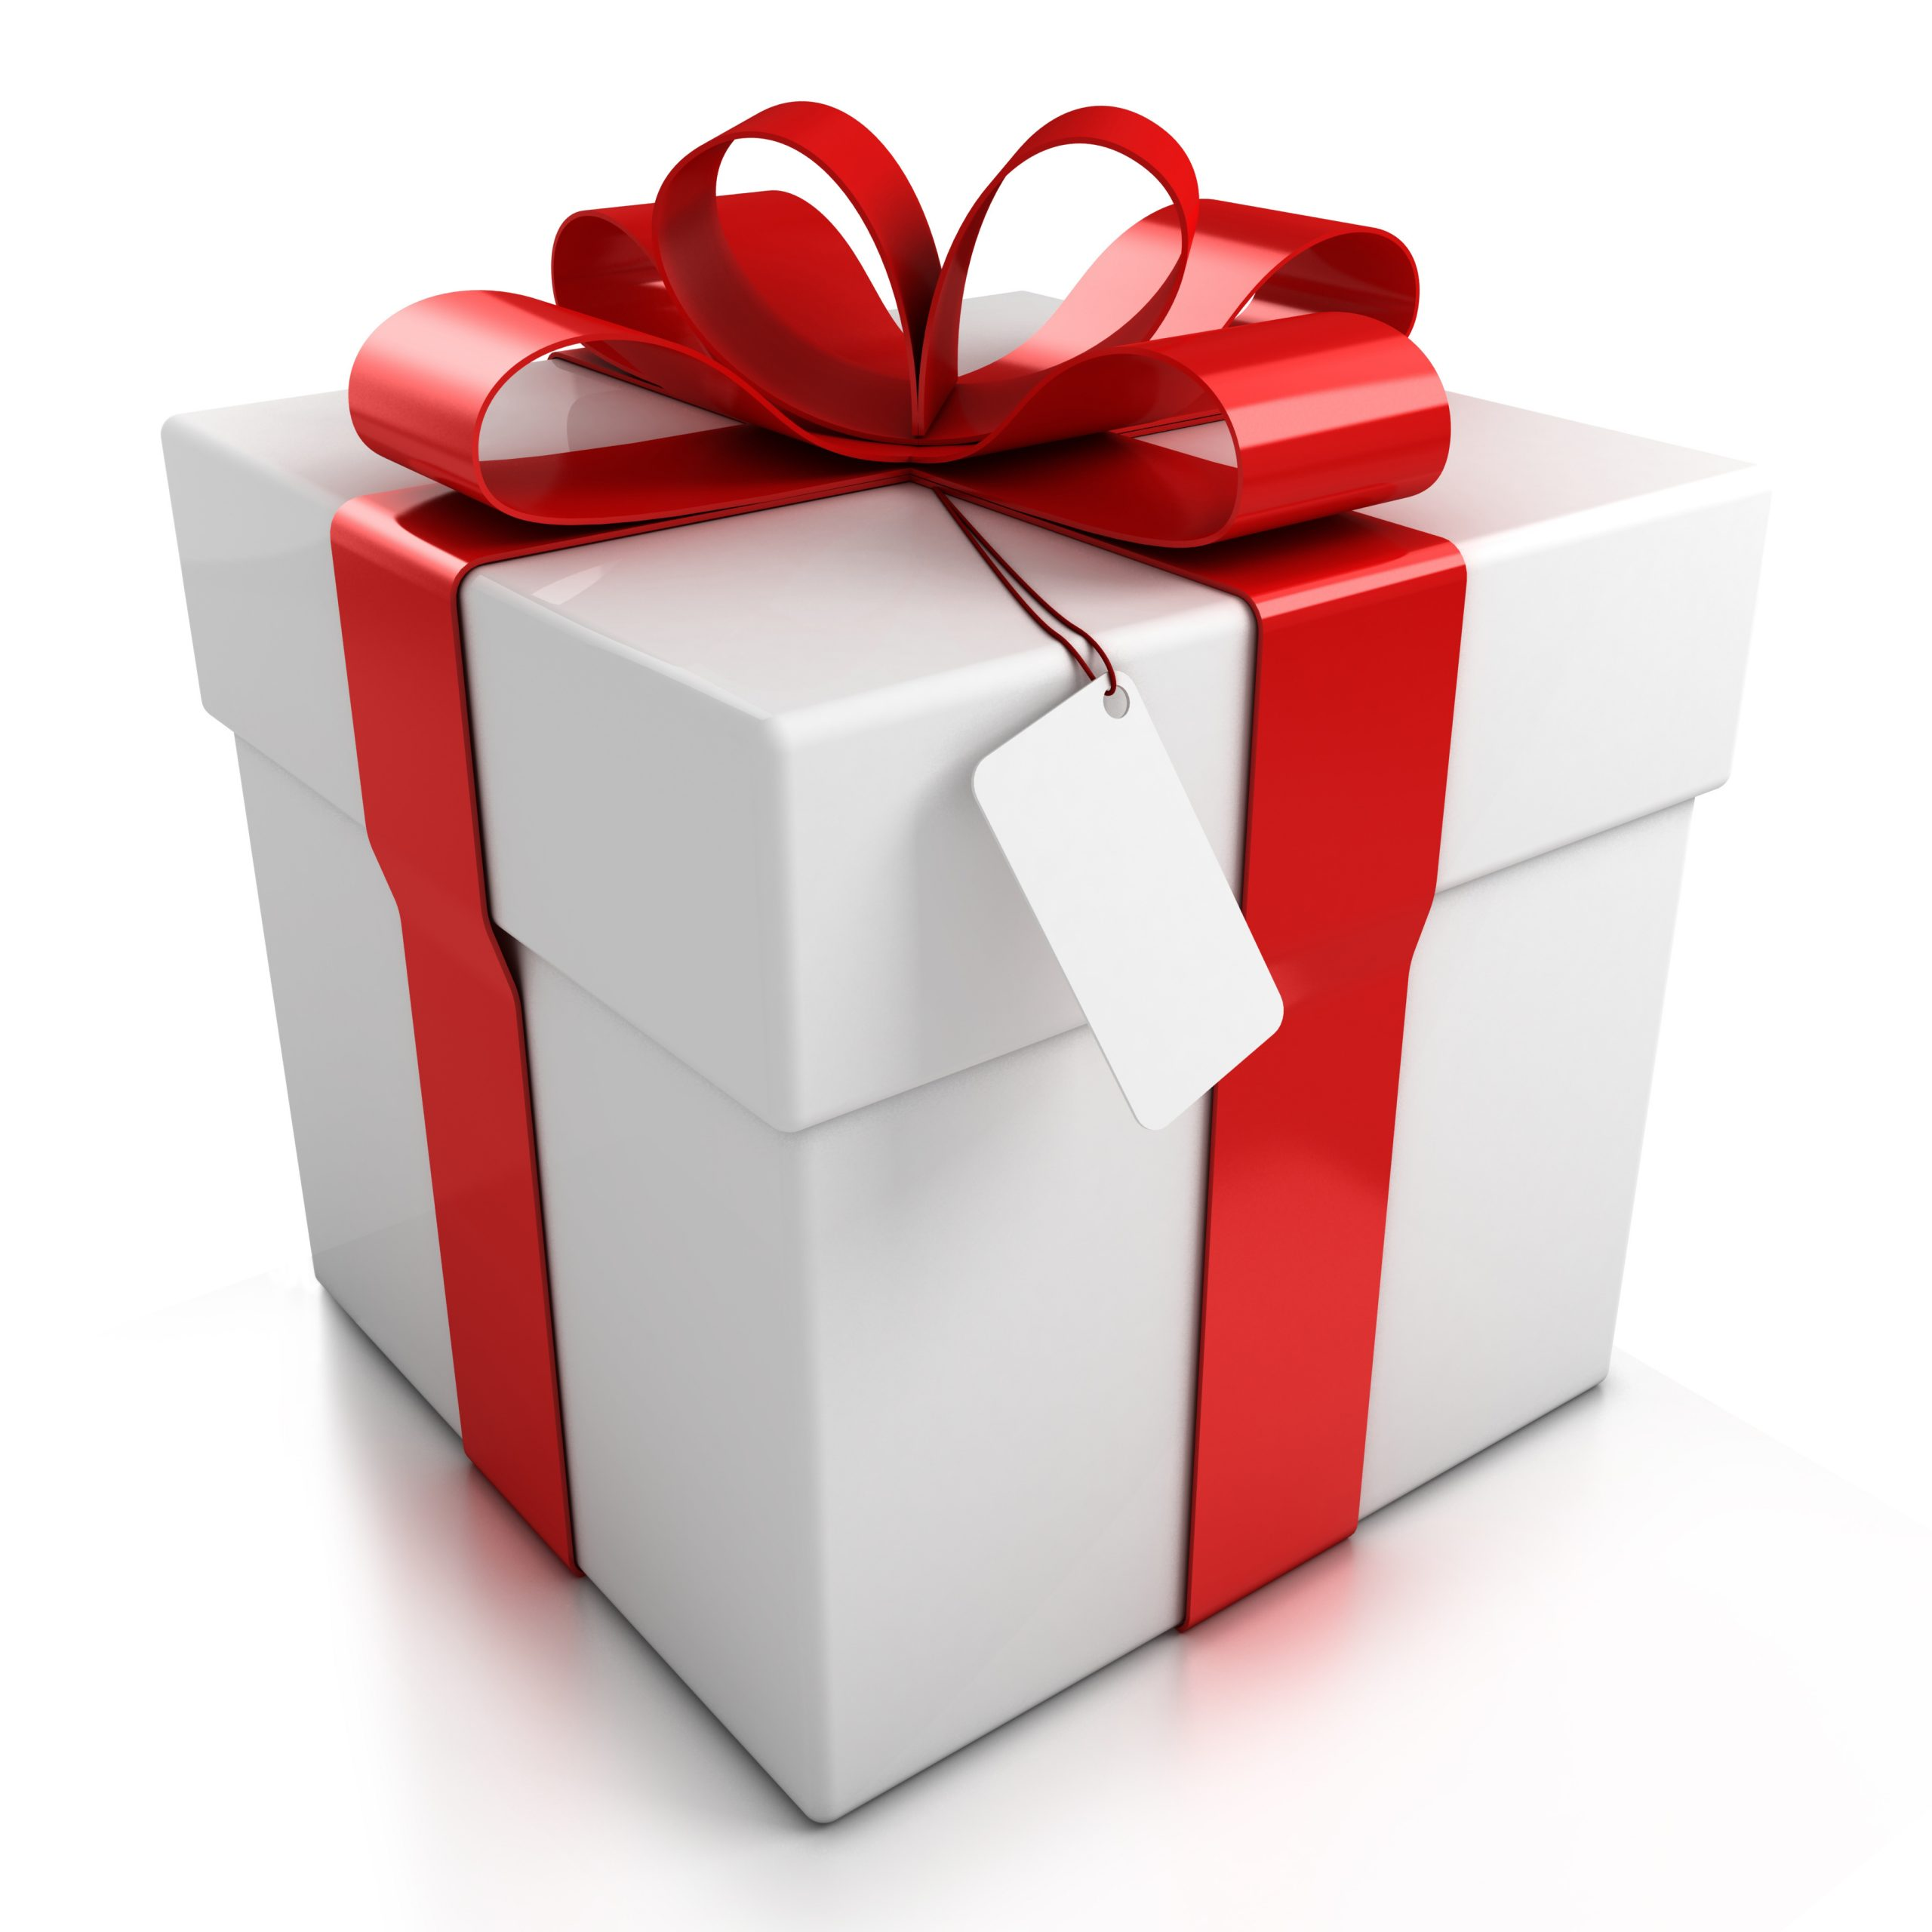 Image of a gift wrapped with red bow.